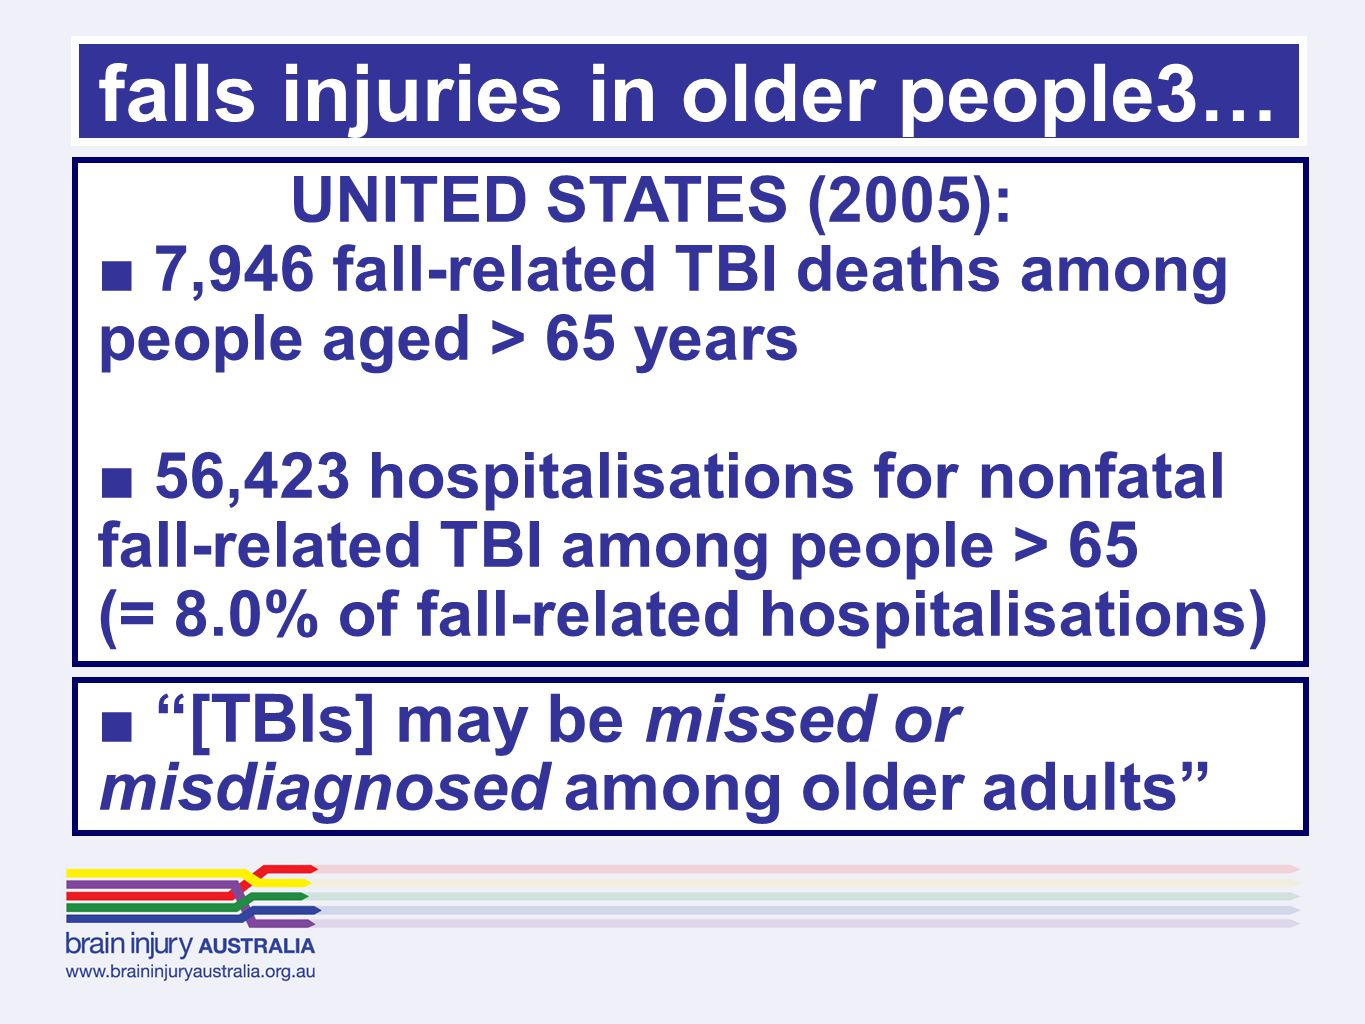 UNITED STATES (2005): ■ 7,946 fall-related TBI deaths among people aged > 65 years ■ 56,423 hospitalisations for nonfatal fall-related TBI among people > 65 (= 8.0% of fall-related hospitalisations) ■ [TBIs] may be missed or misdiagnosed among older adults falls injuries in older people3…